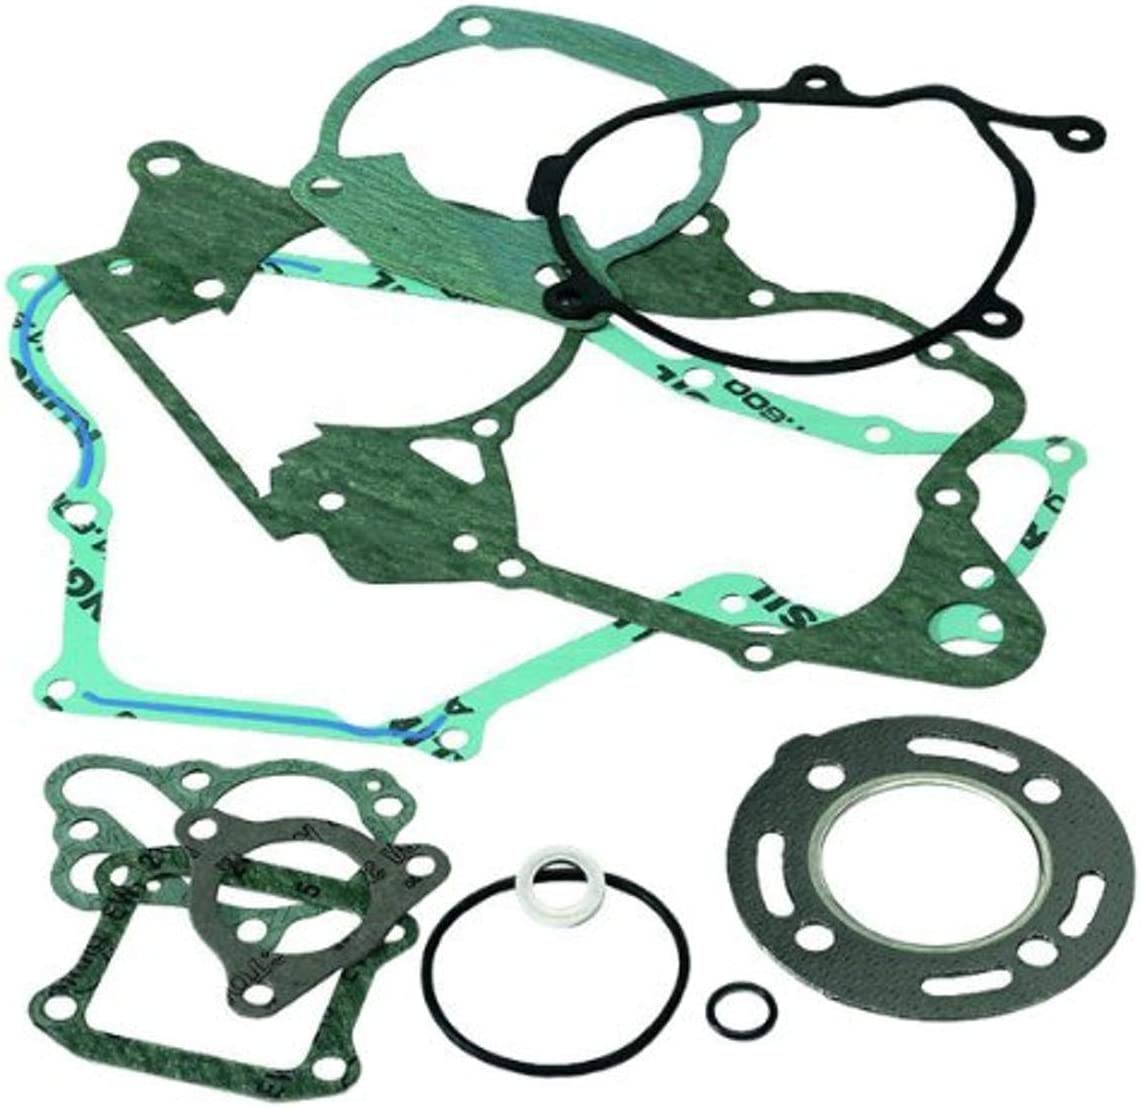 Athena P400210850198 Complete Kit Engine Ranking TOP7 Gasket discount